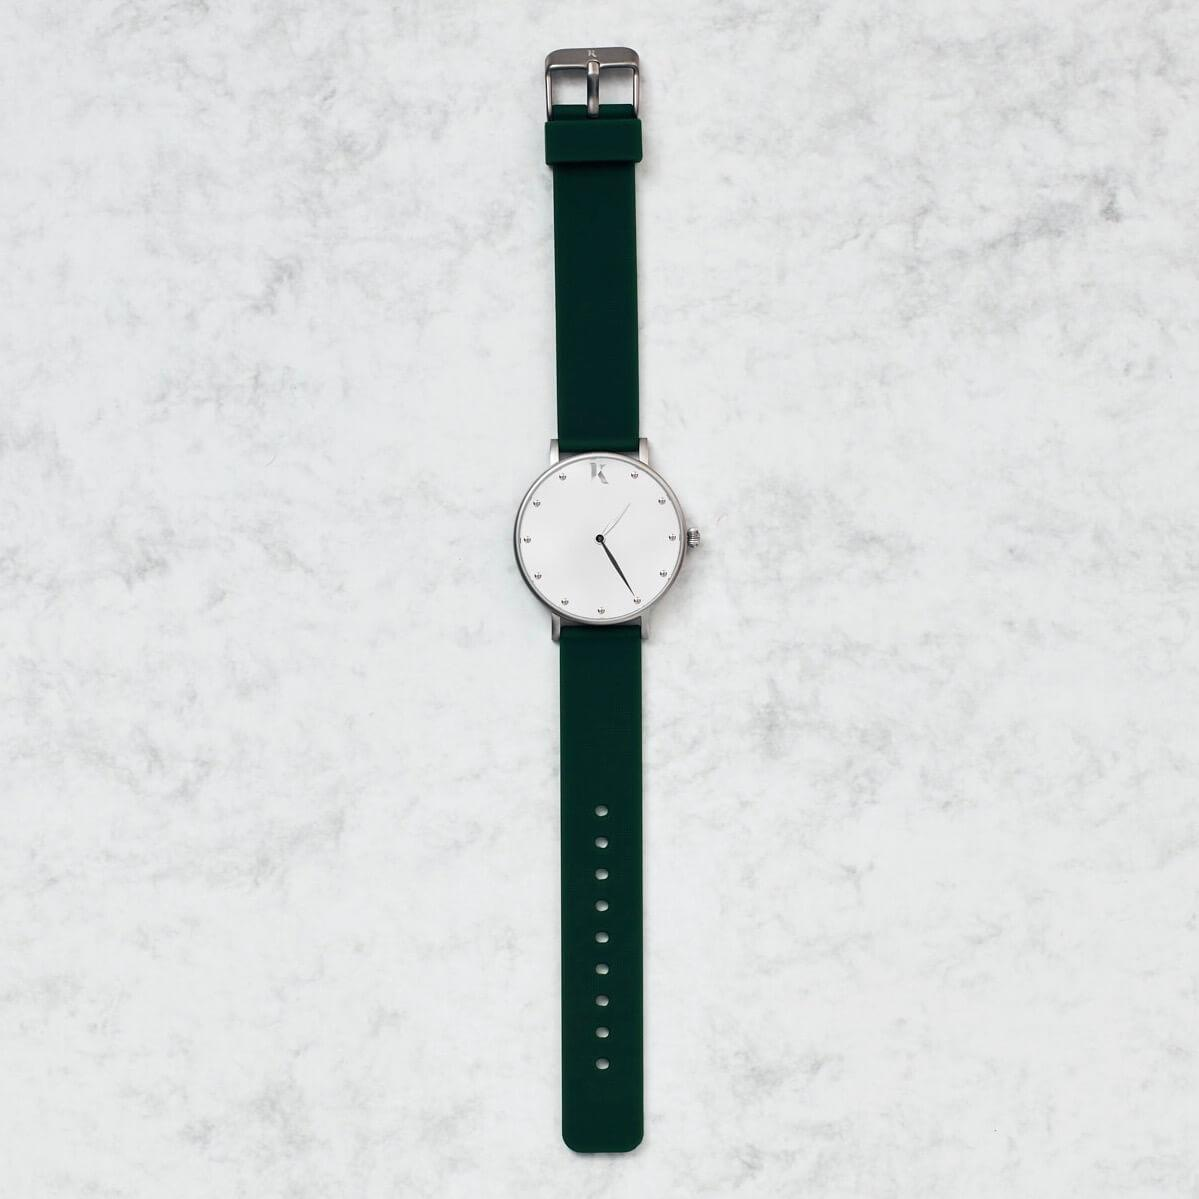 Emerald Green & Silver Silicone Watch